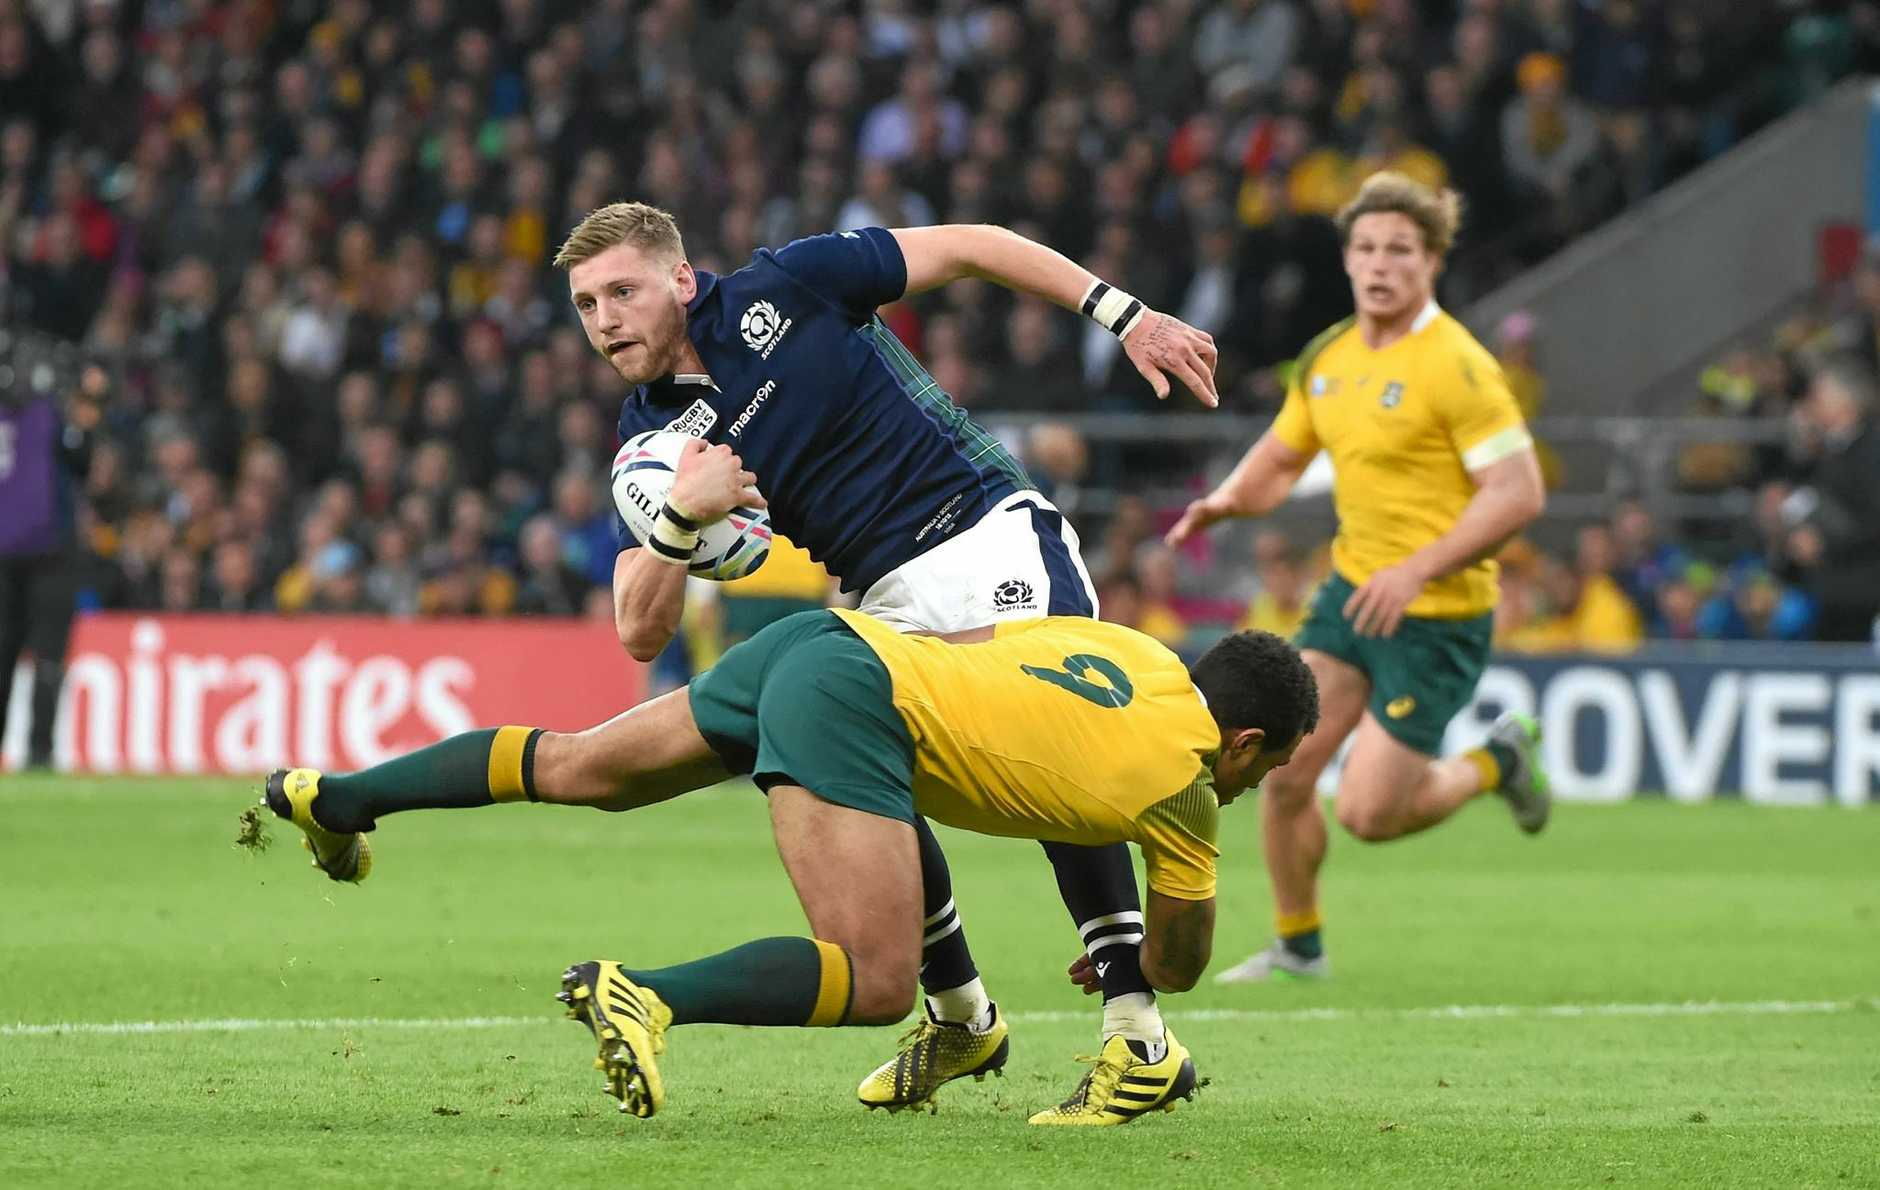 Scotland's Finn Russell is one of the survivors from the loss to Australia in the World Cup quarter-final in 2015.